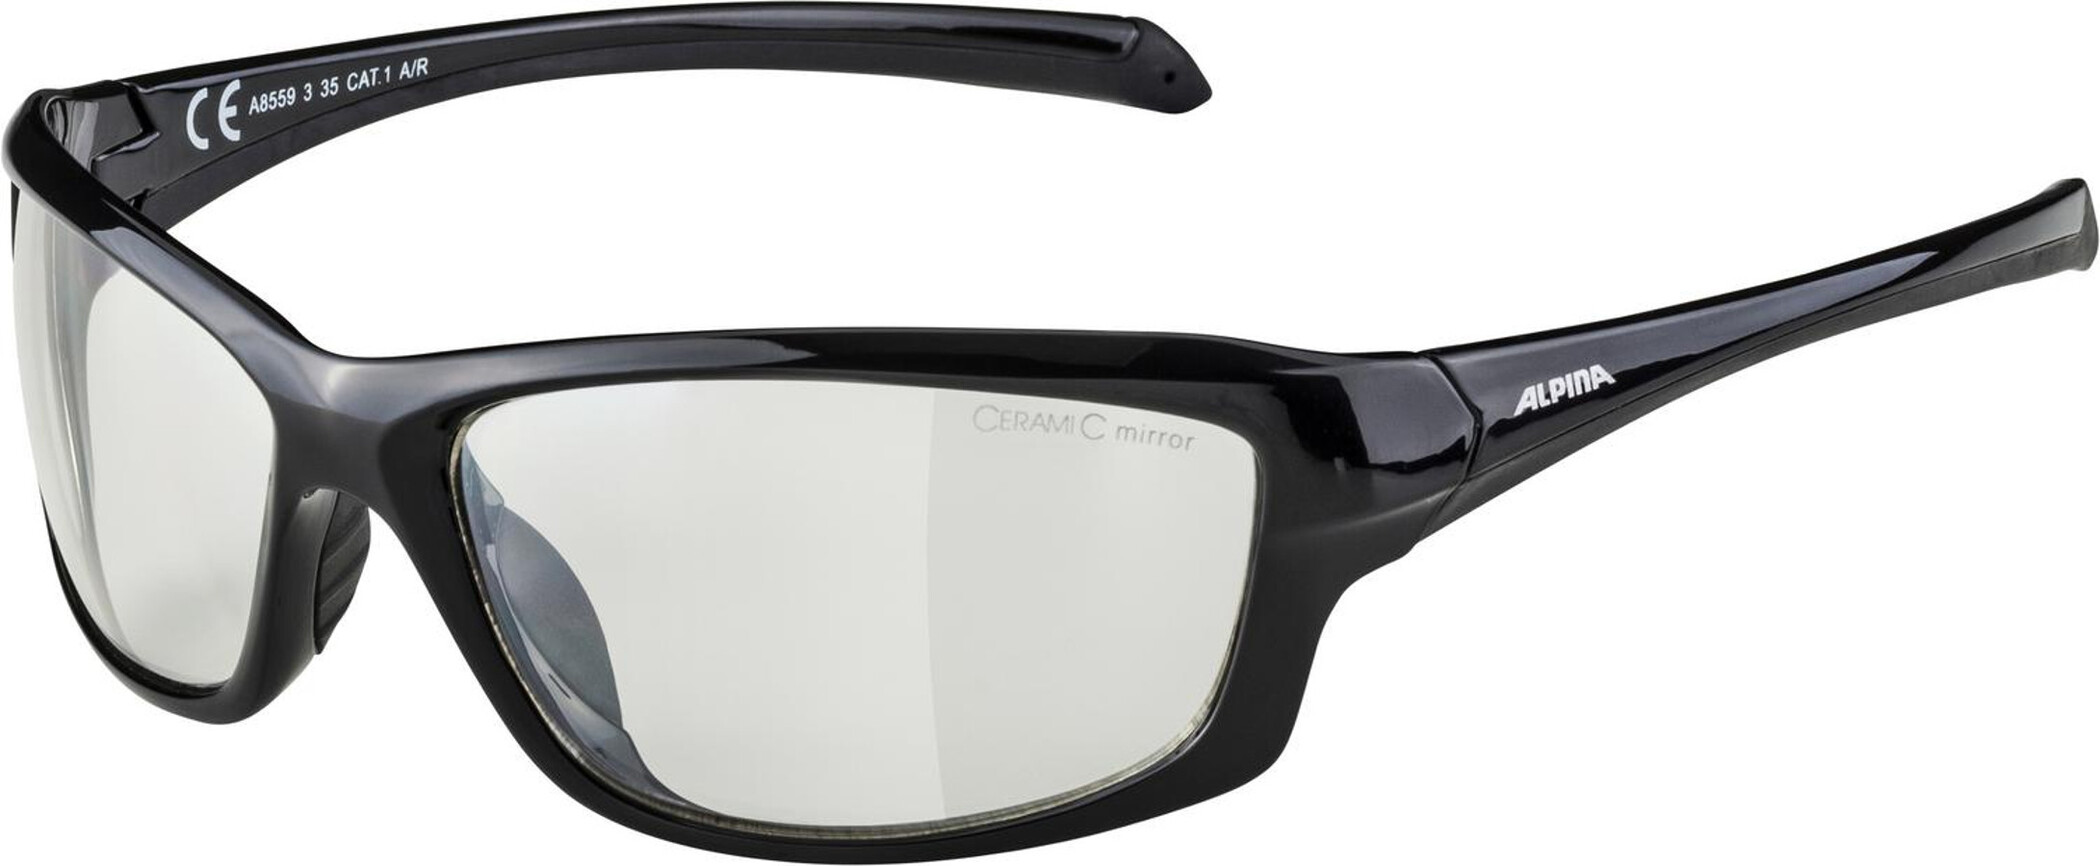 Alpina Dyfer Cykelbriller, black (2019) | Glasses